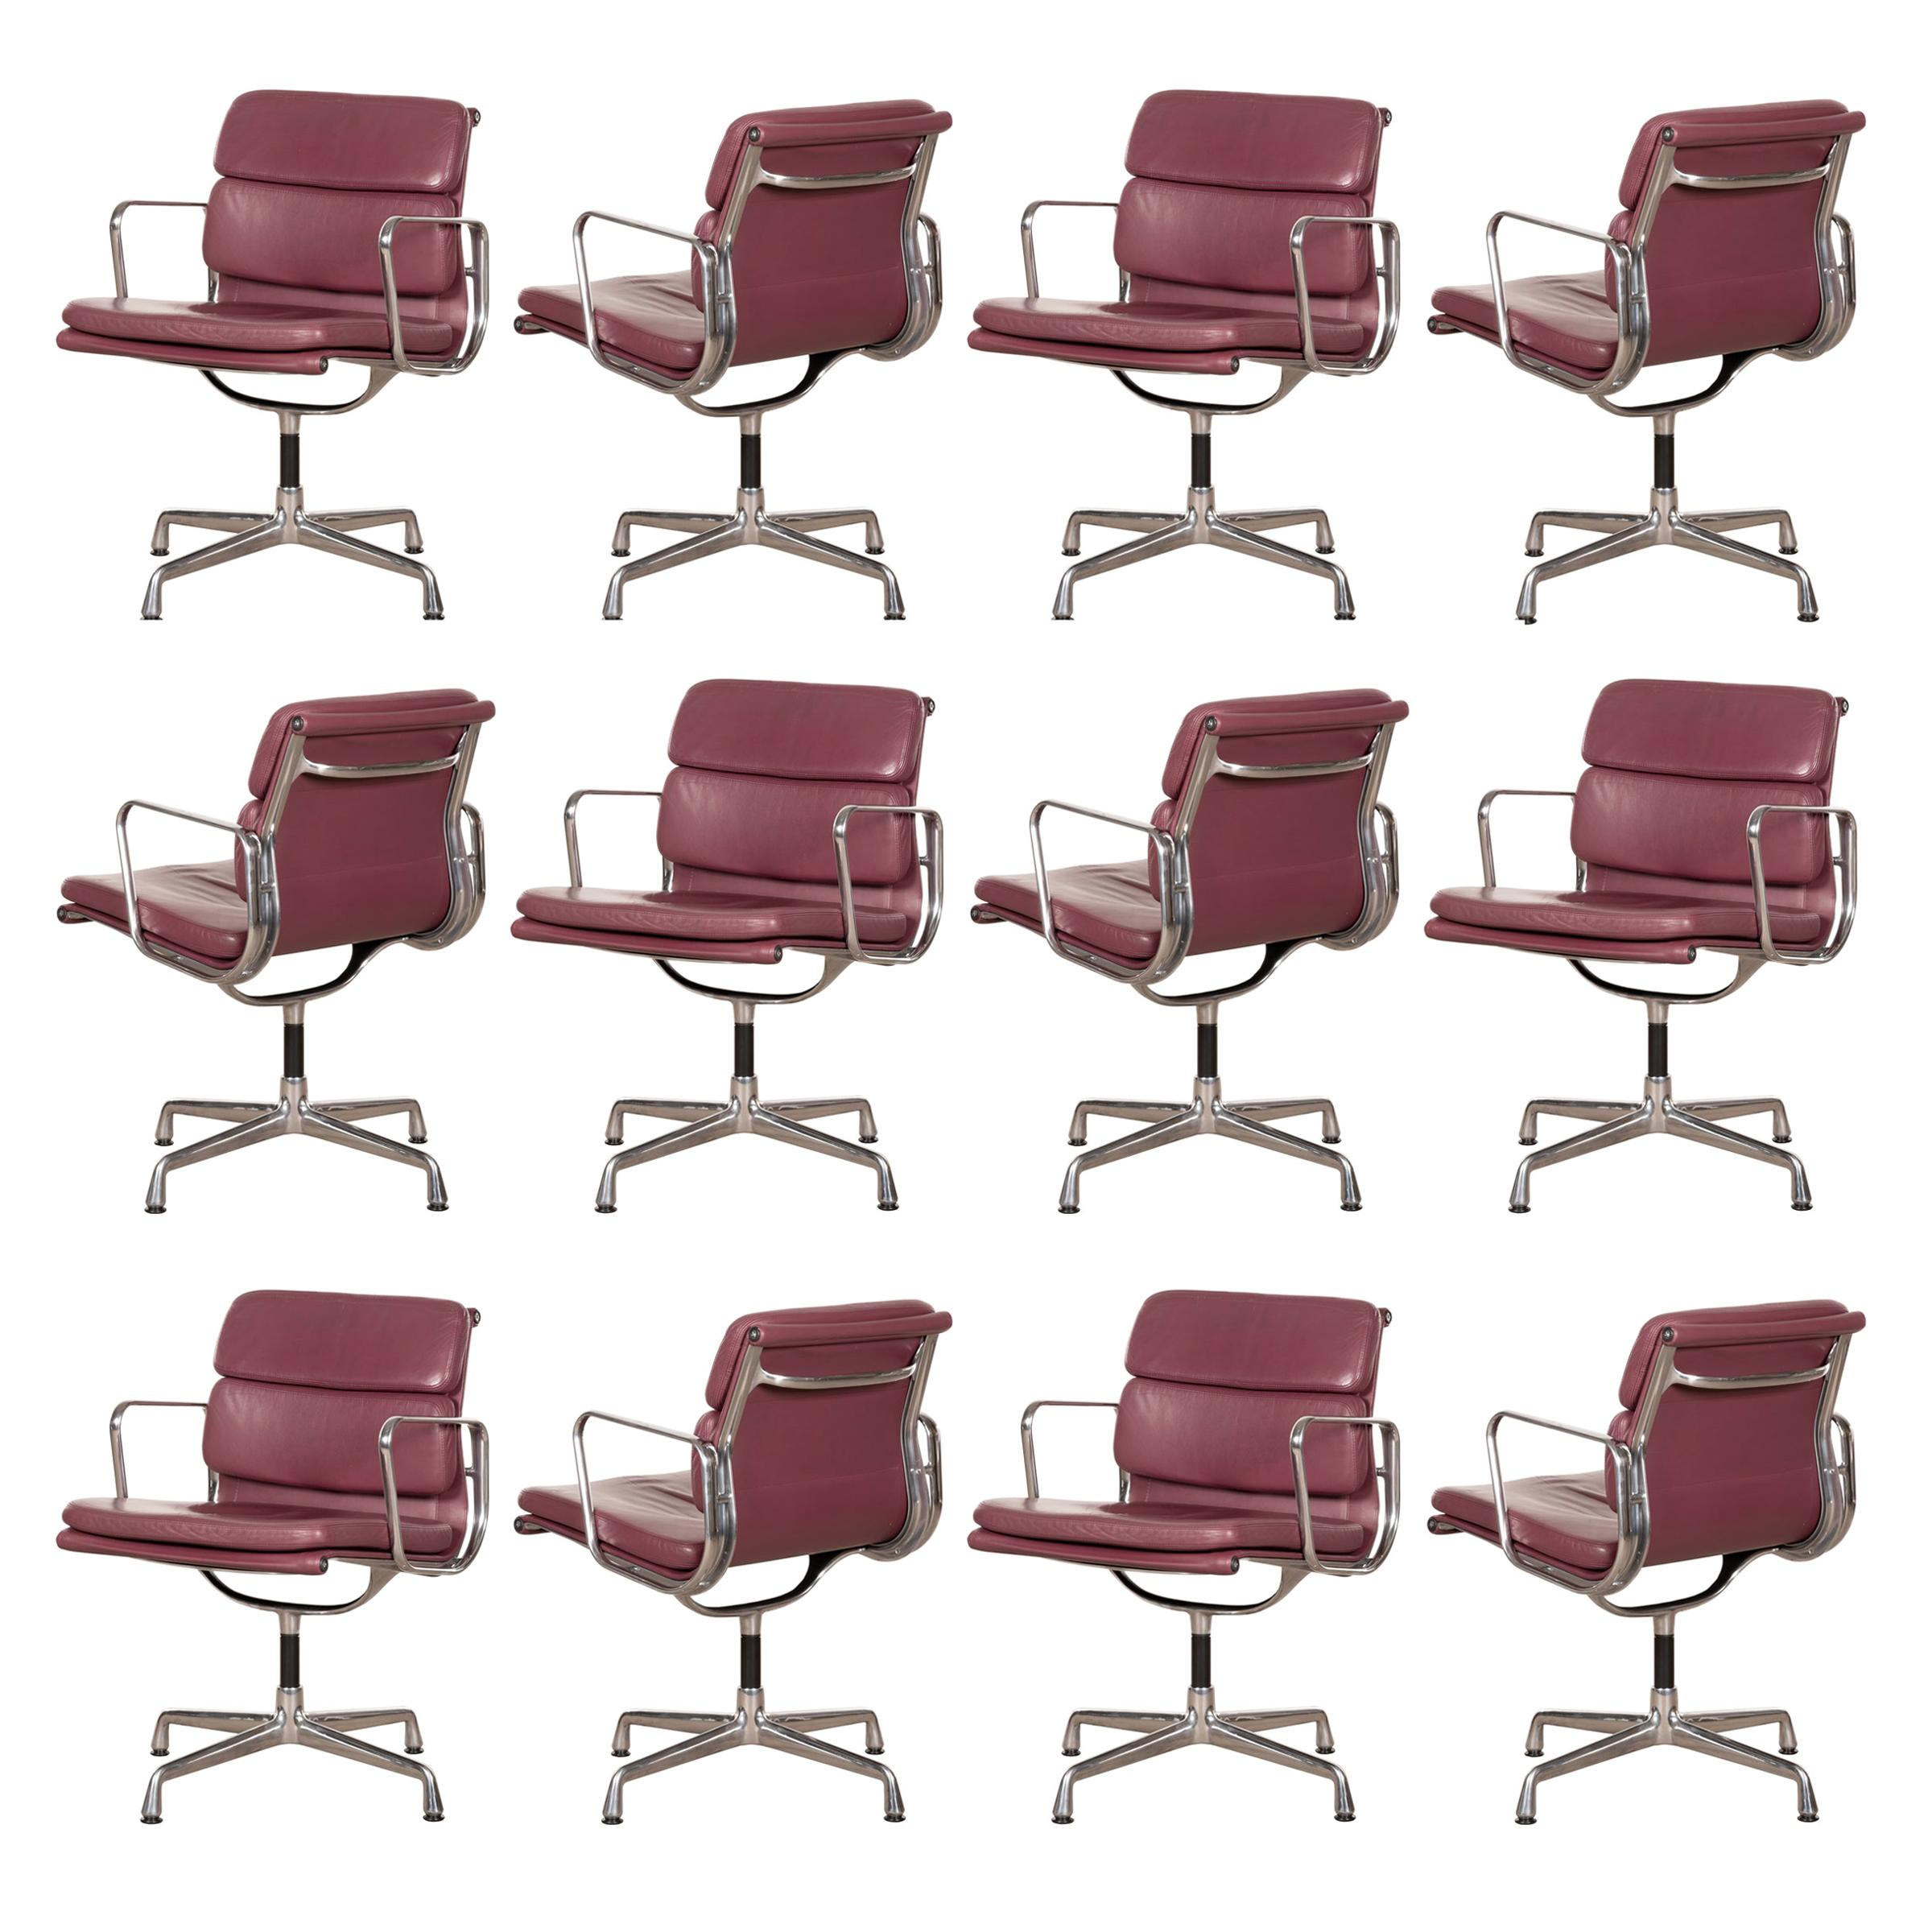 Charles & Ray Eames EA208 Soft Pad Chairs in Aubergine / Purple Leather by Vitra